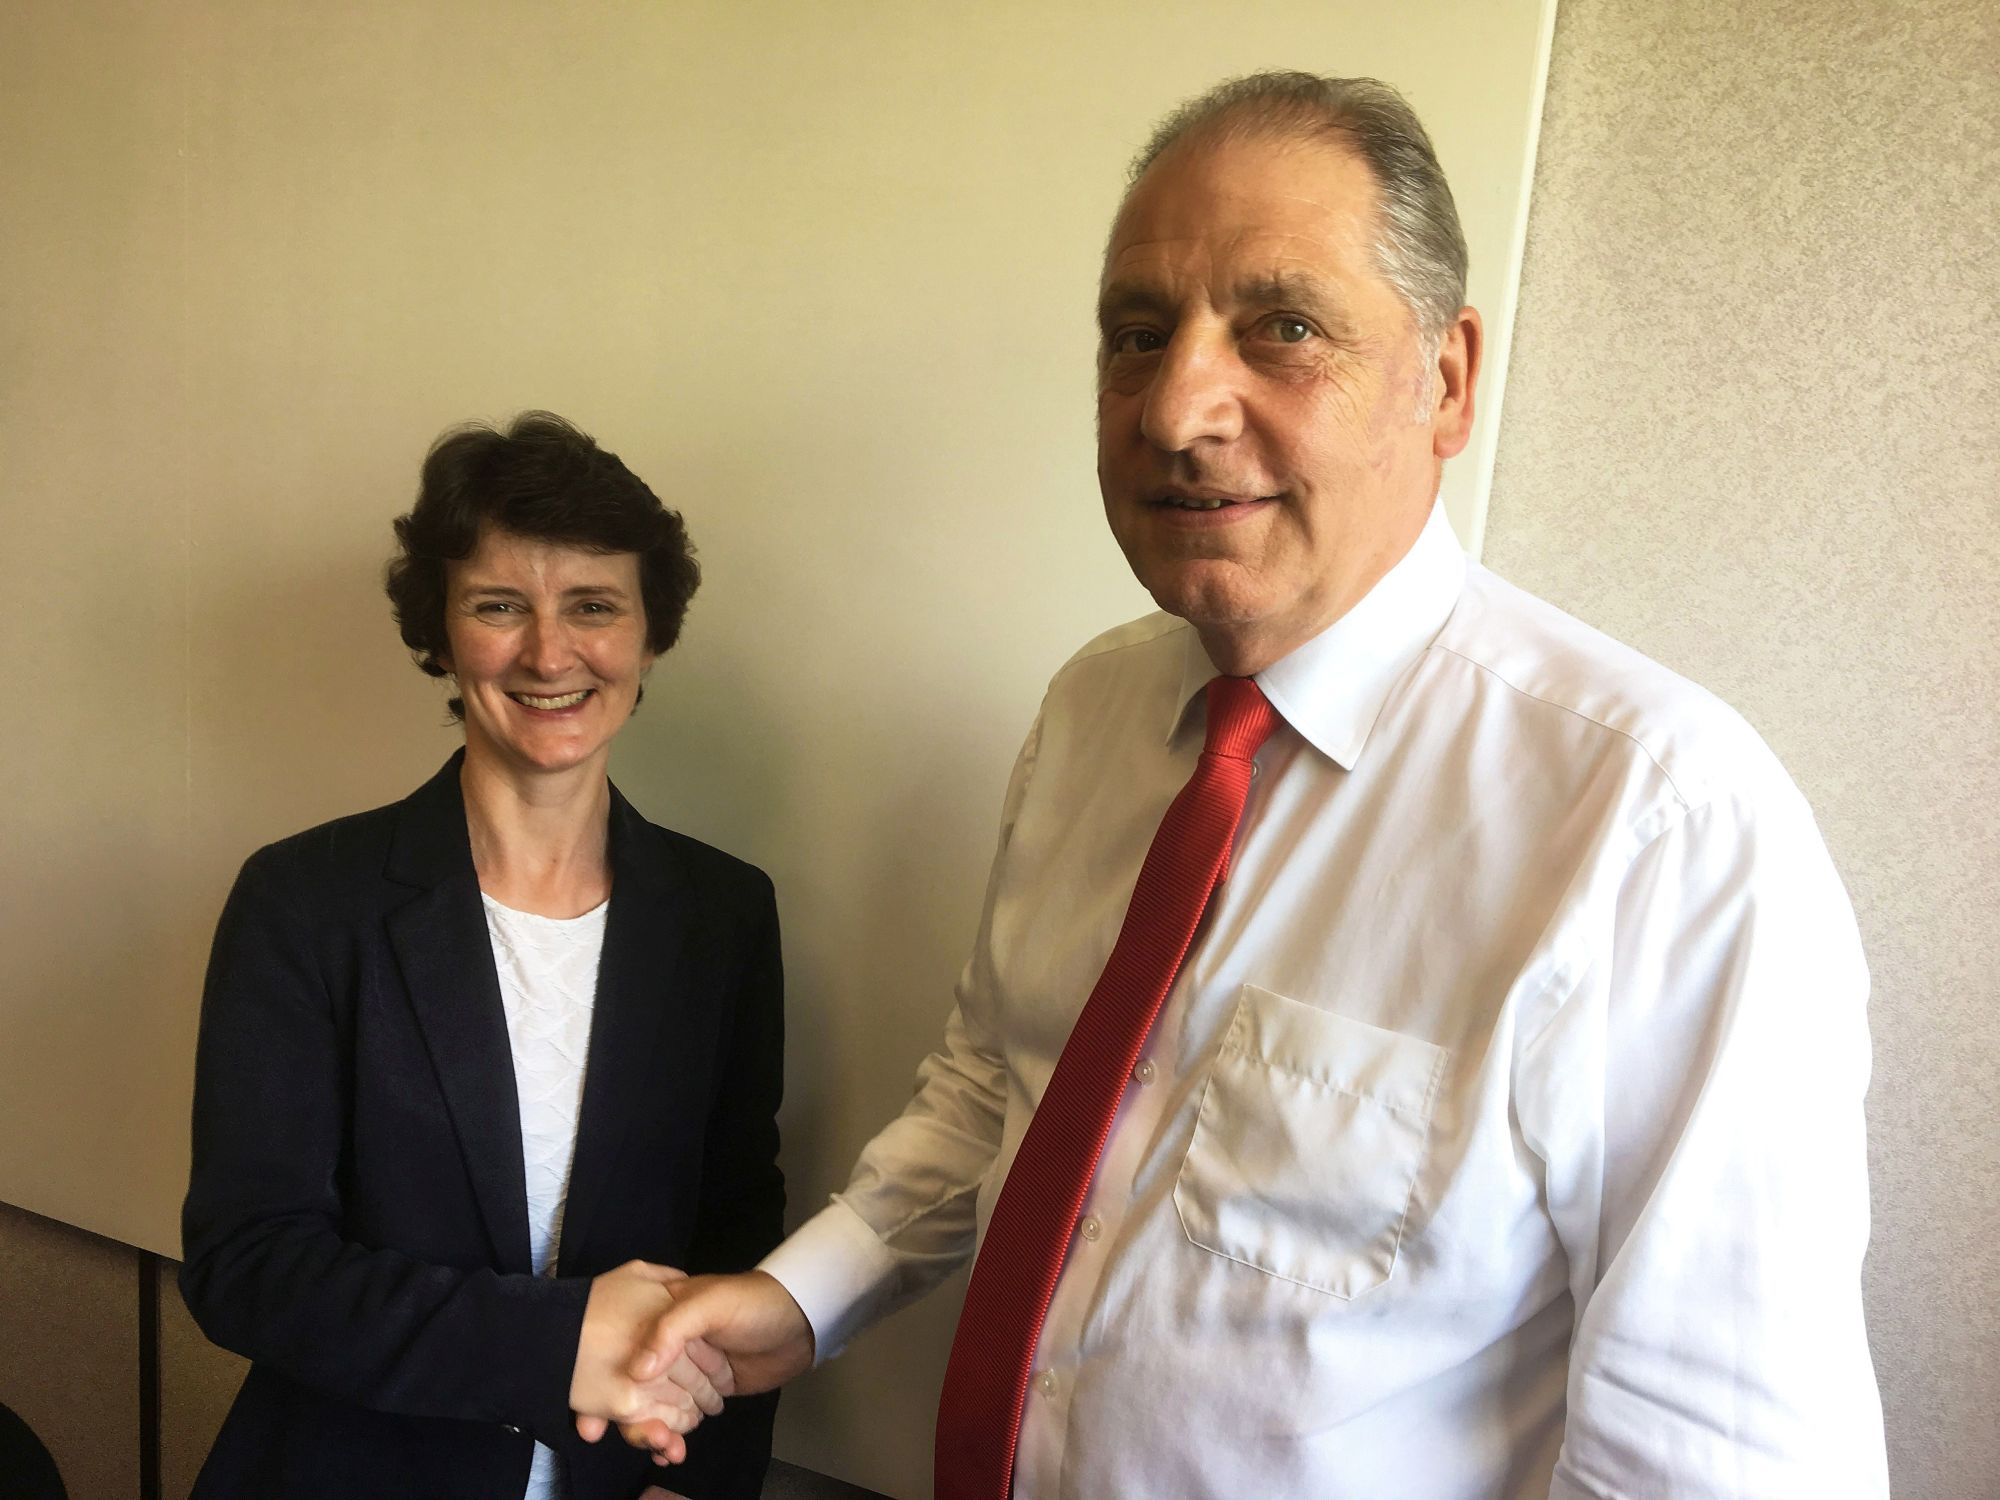 Lauren Kyle, Head of Cleaning at Sodexo and Chair of the BSA's Cleaning Committee and Stan Atkins, Chair of the British Cleaning Council.